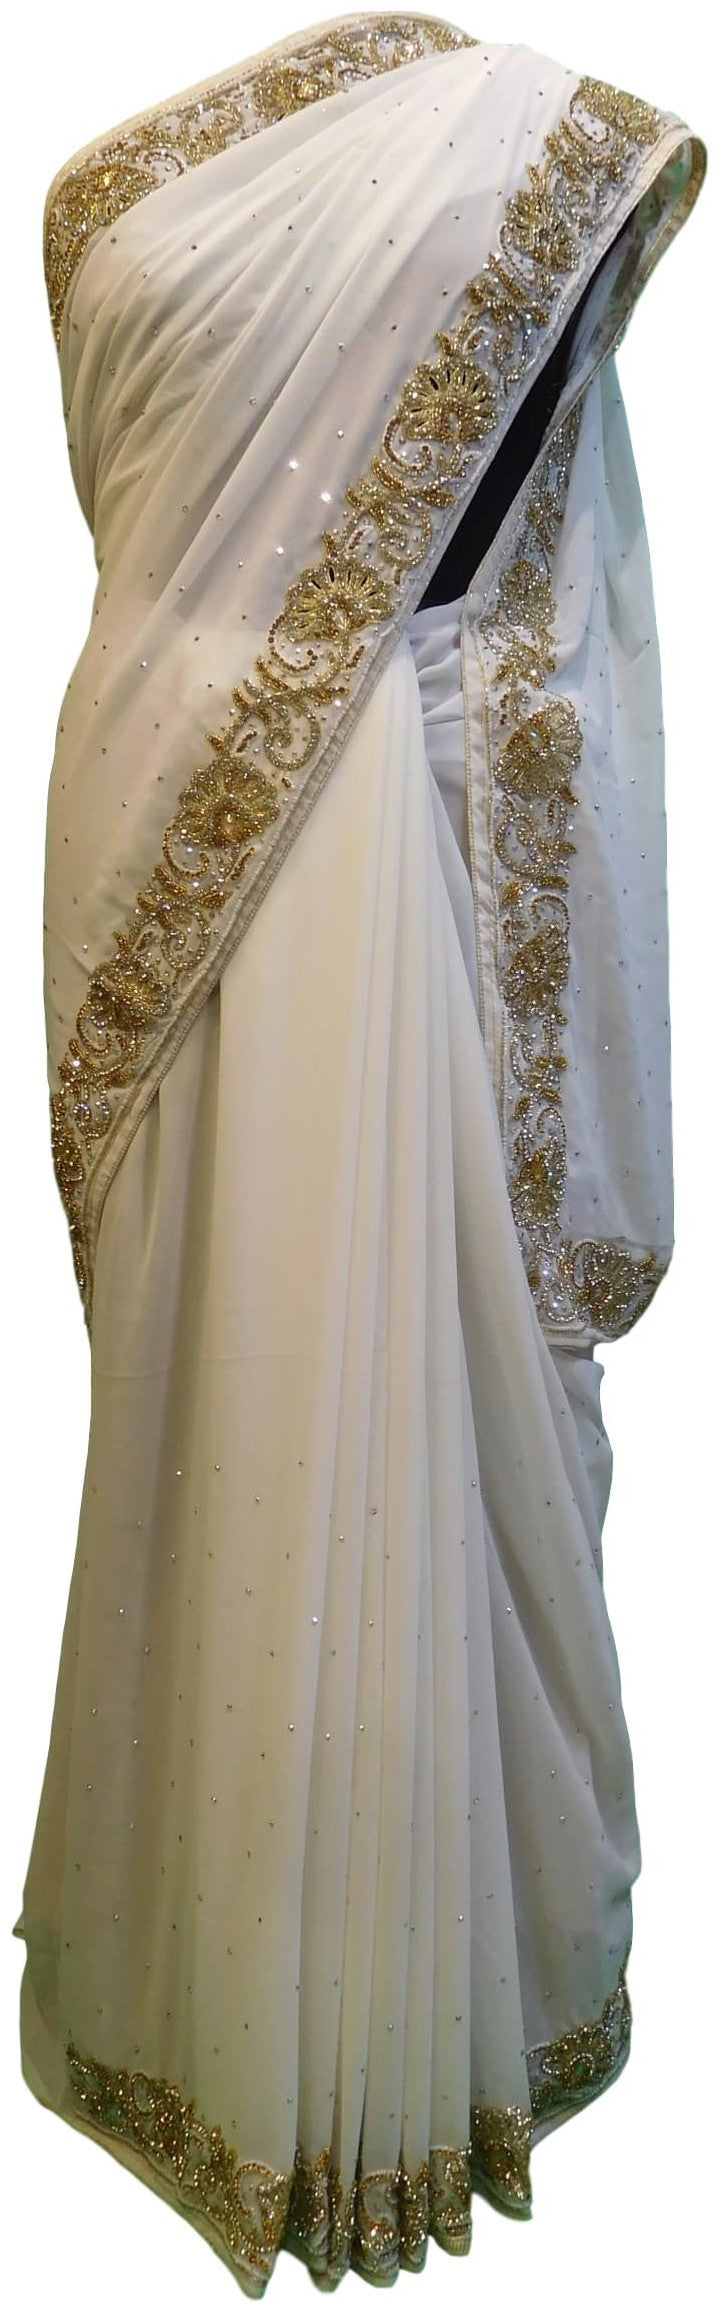 White Designer Gerogette (Synthetic) Hand Embroidery Stone Border Sari Saree